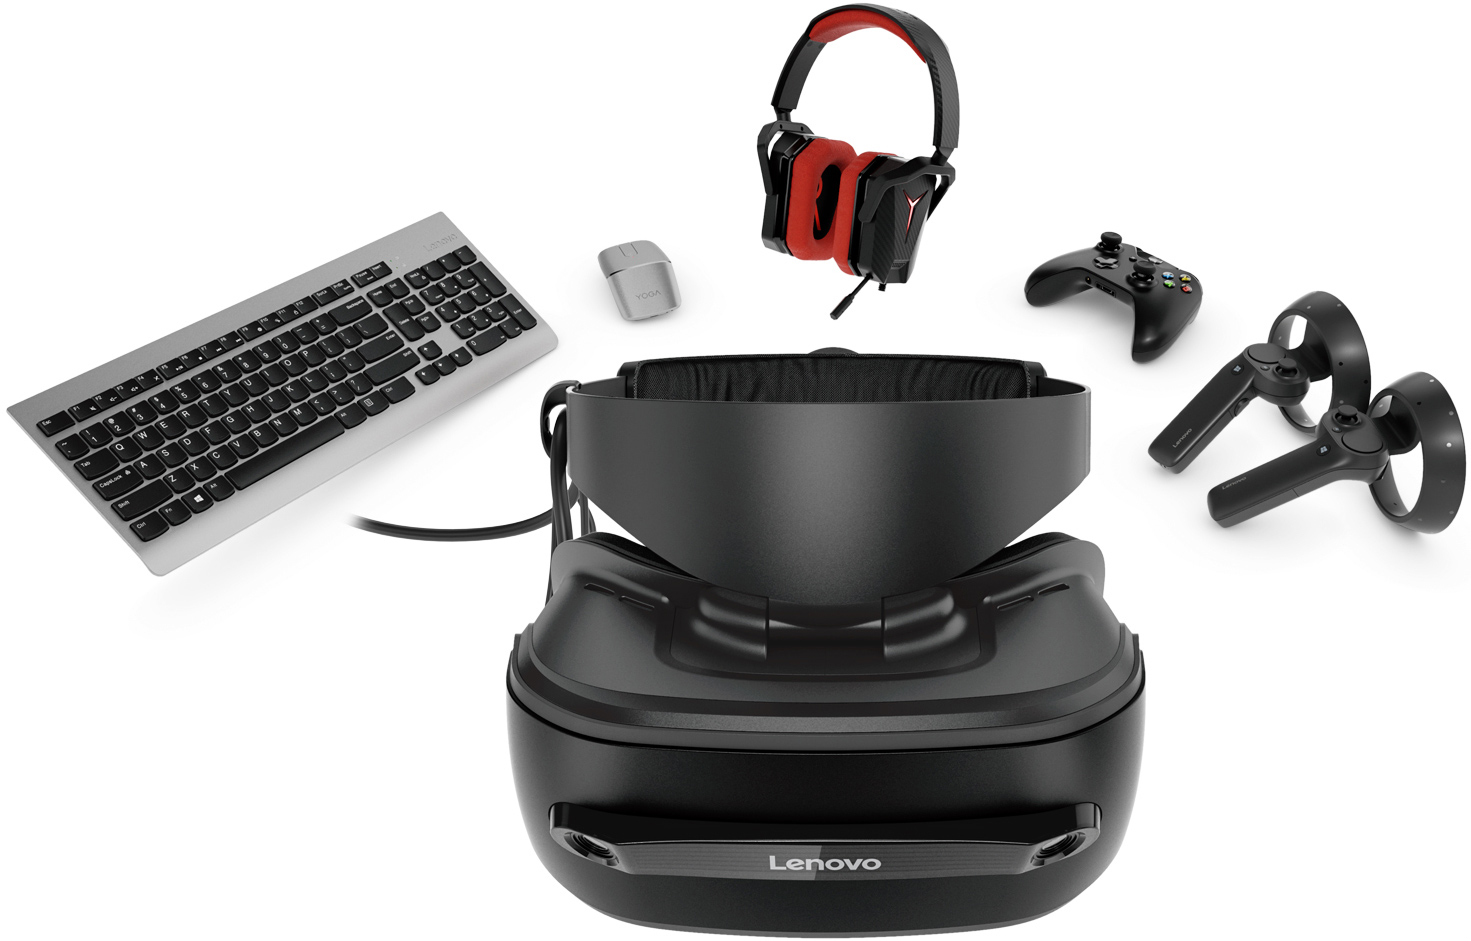 Windows Mixed Reality Headsets Gain SteamVR Support, a